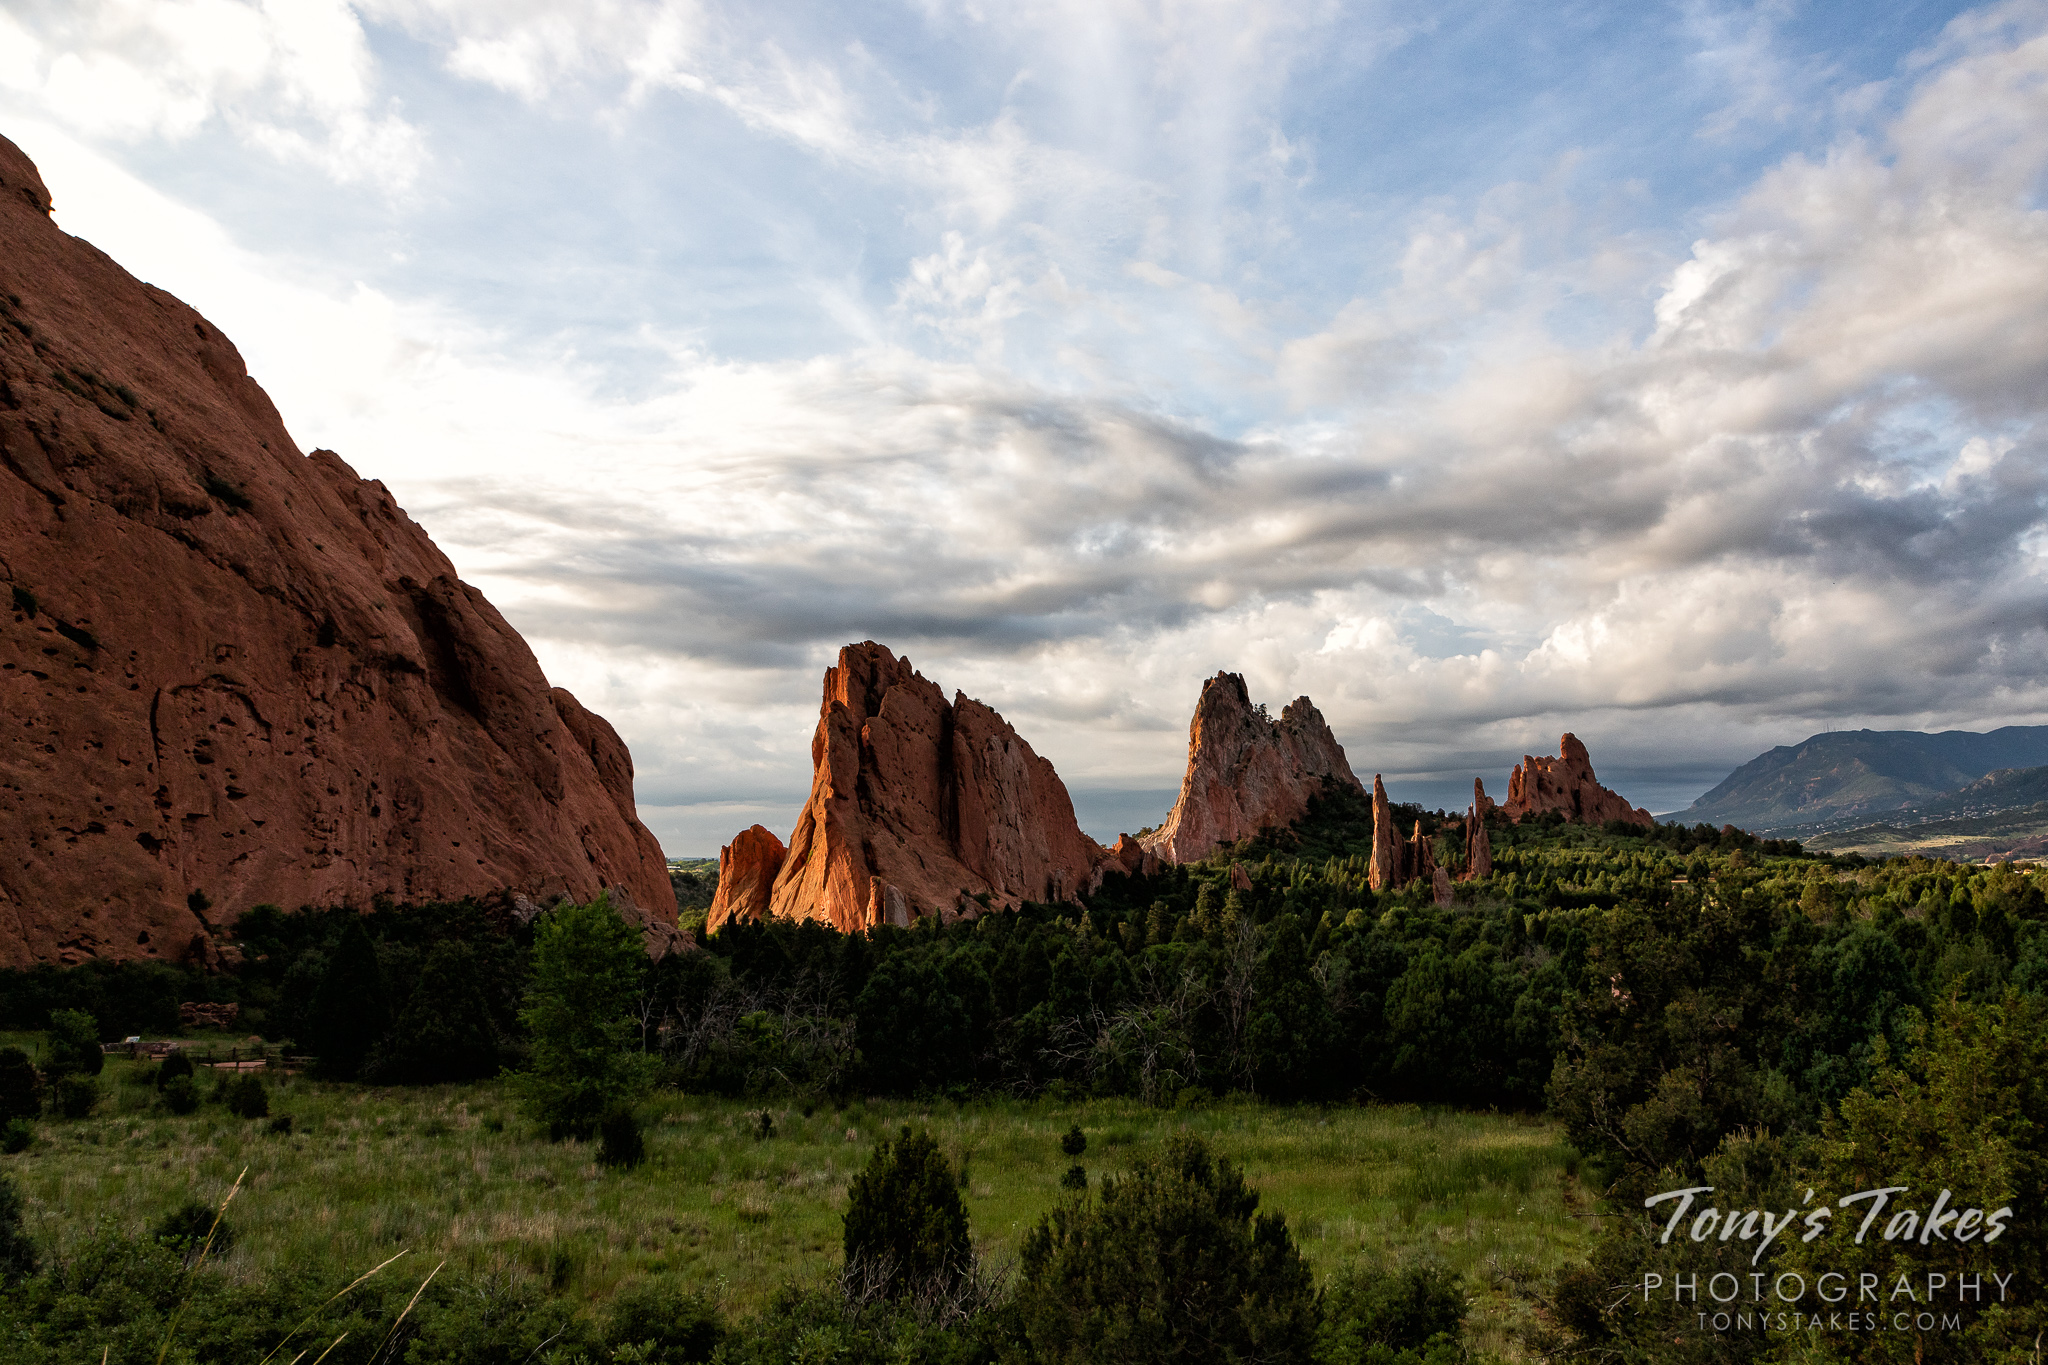 A beautiful morning at the Garden of the Gods in Colorado Springs. (© Tony's Takes)